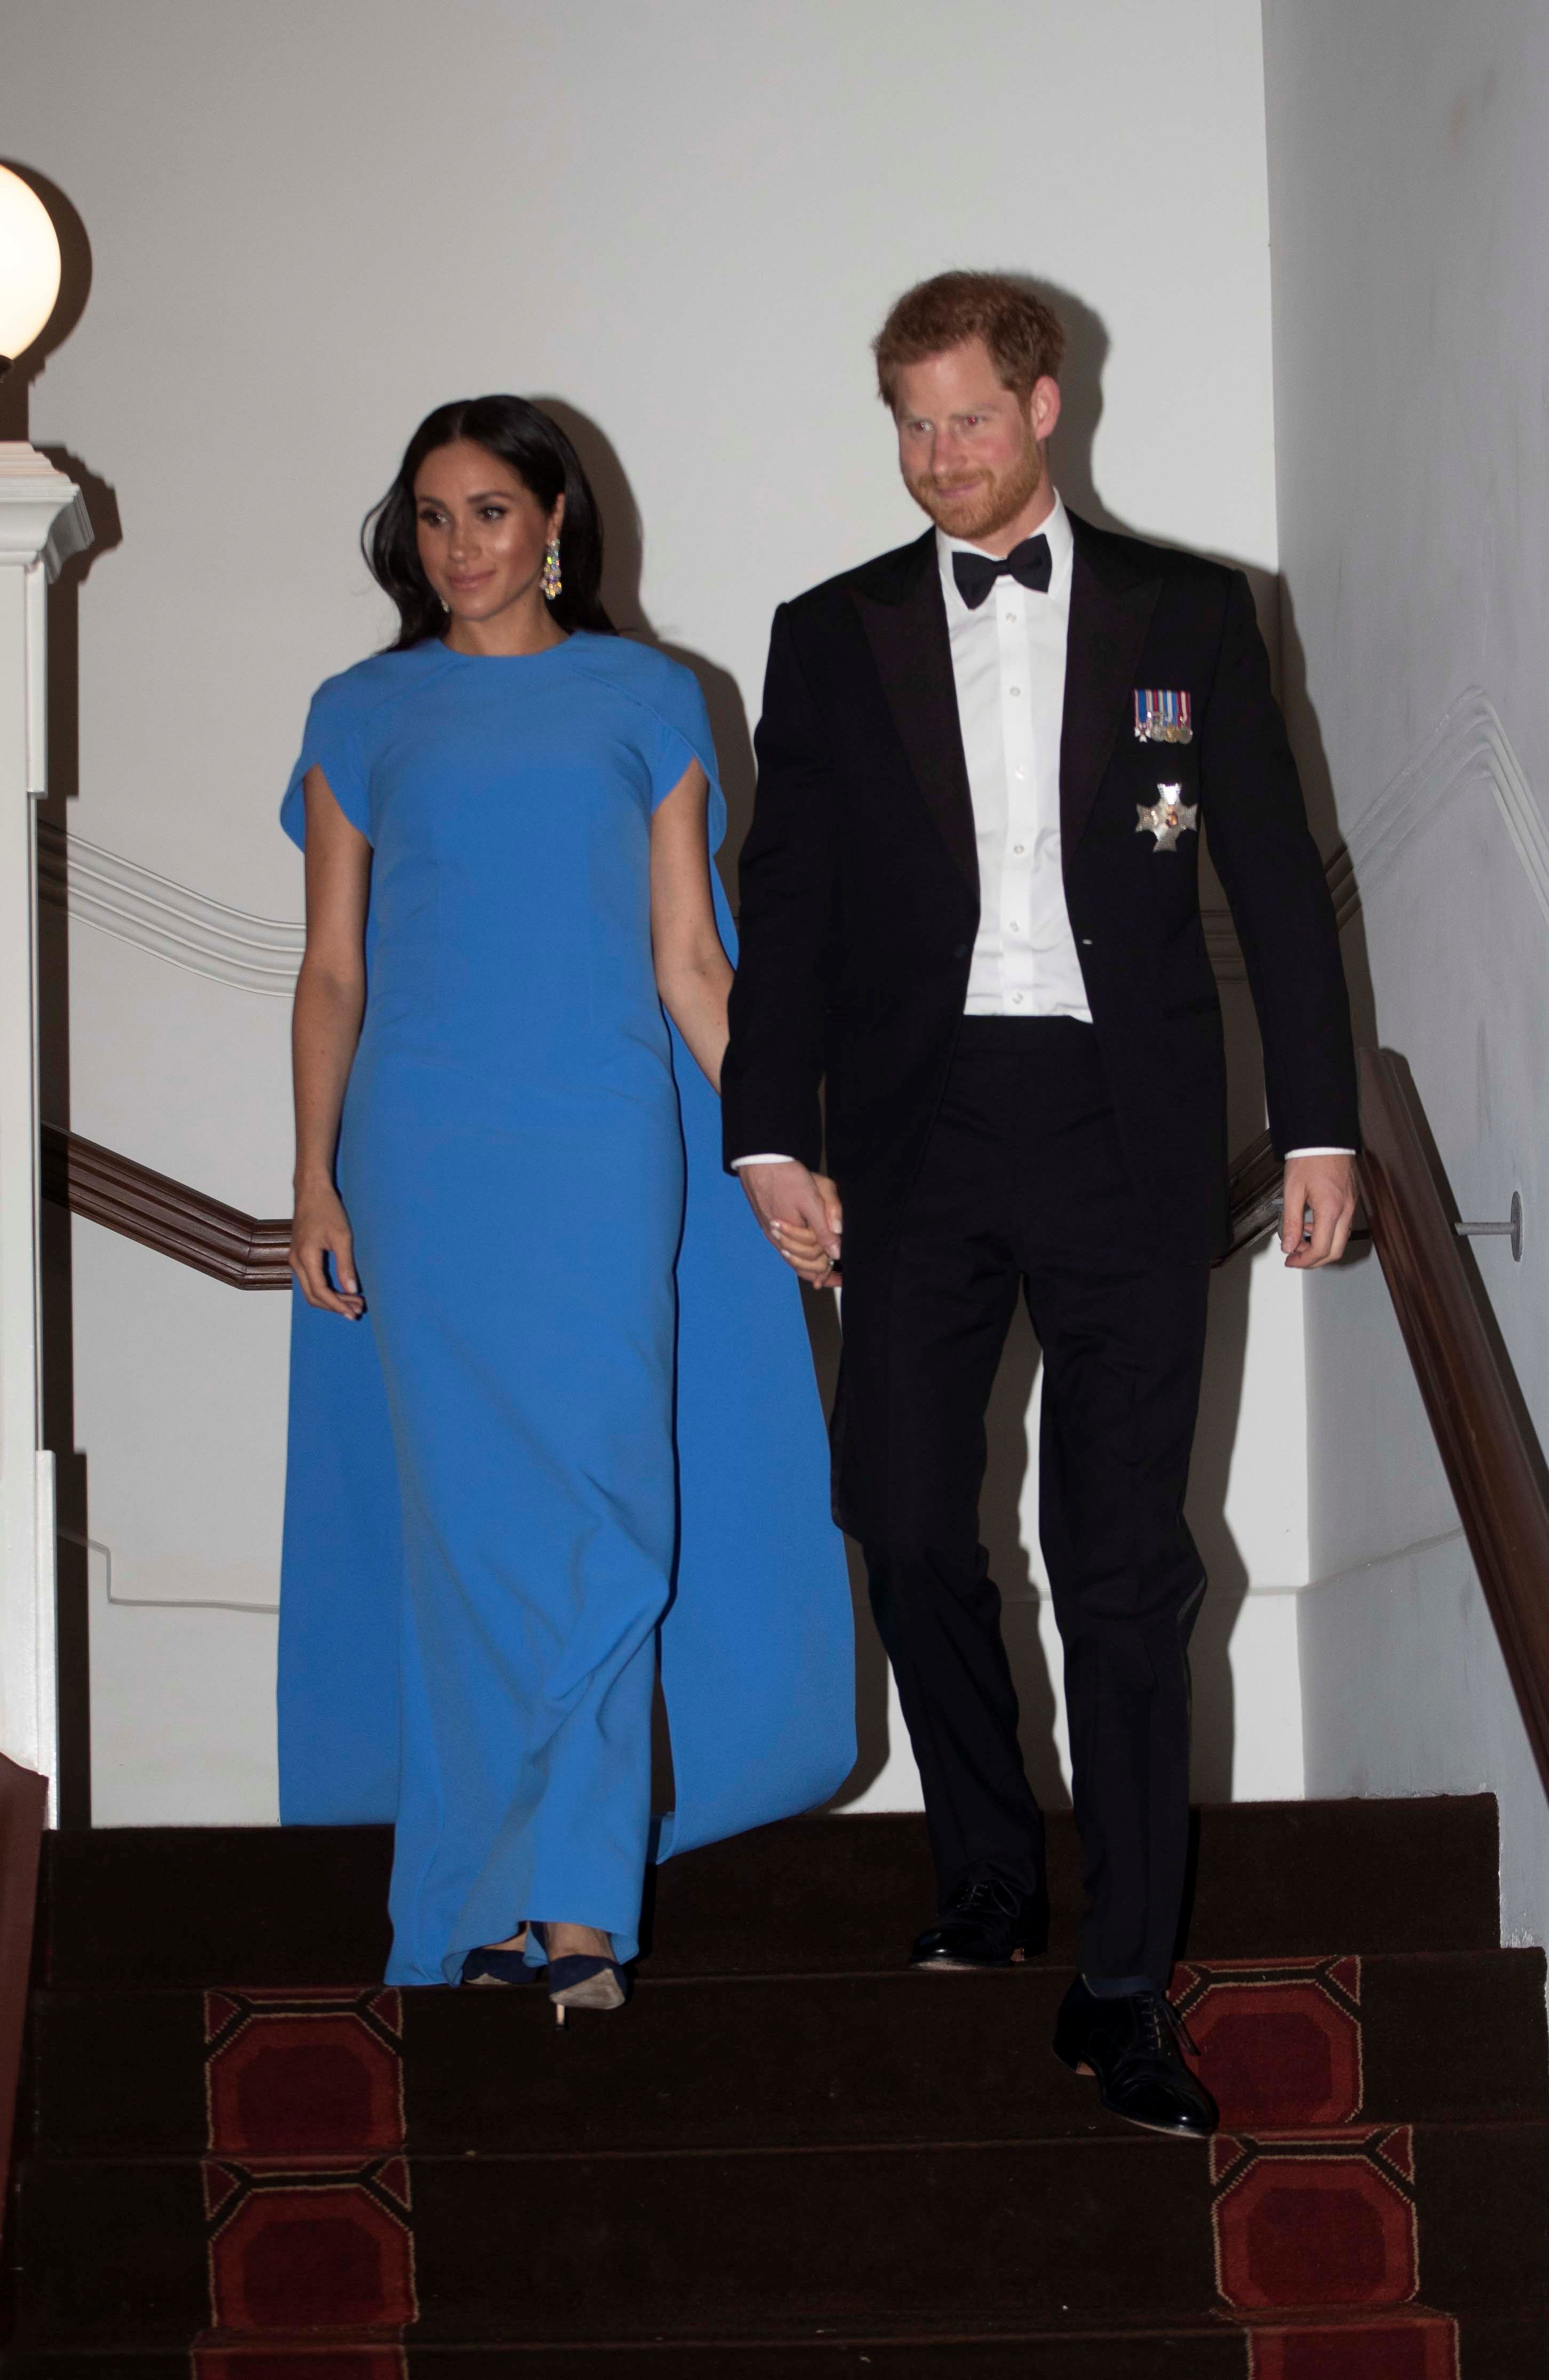 Meghan Markle Dazzles In Glamorous Blue Dress With A